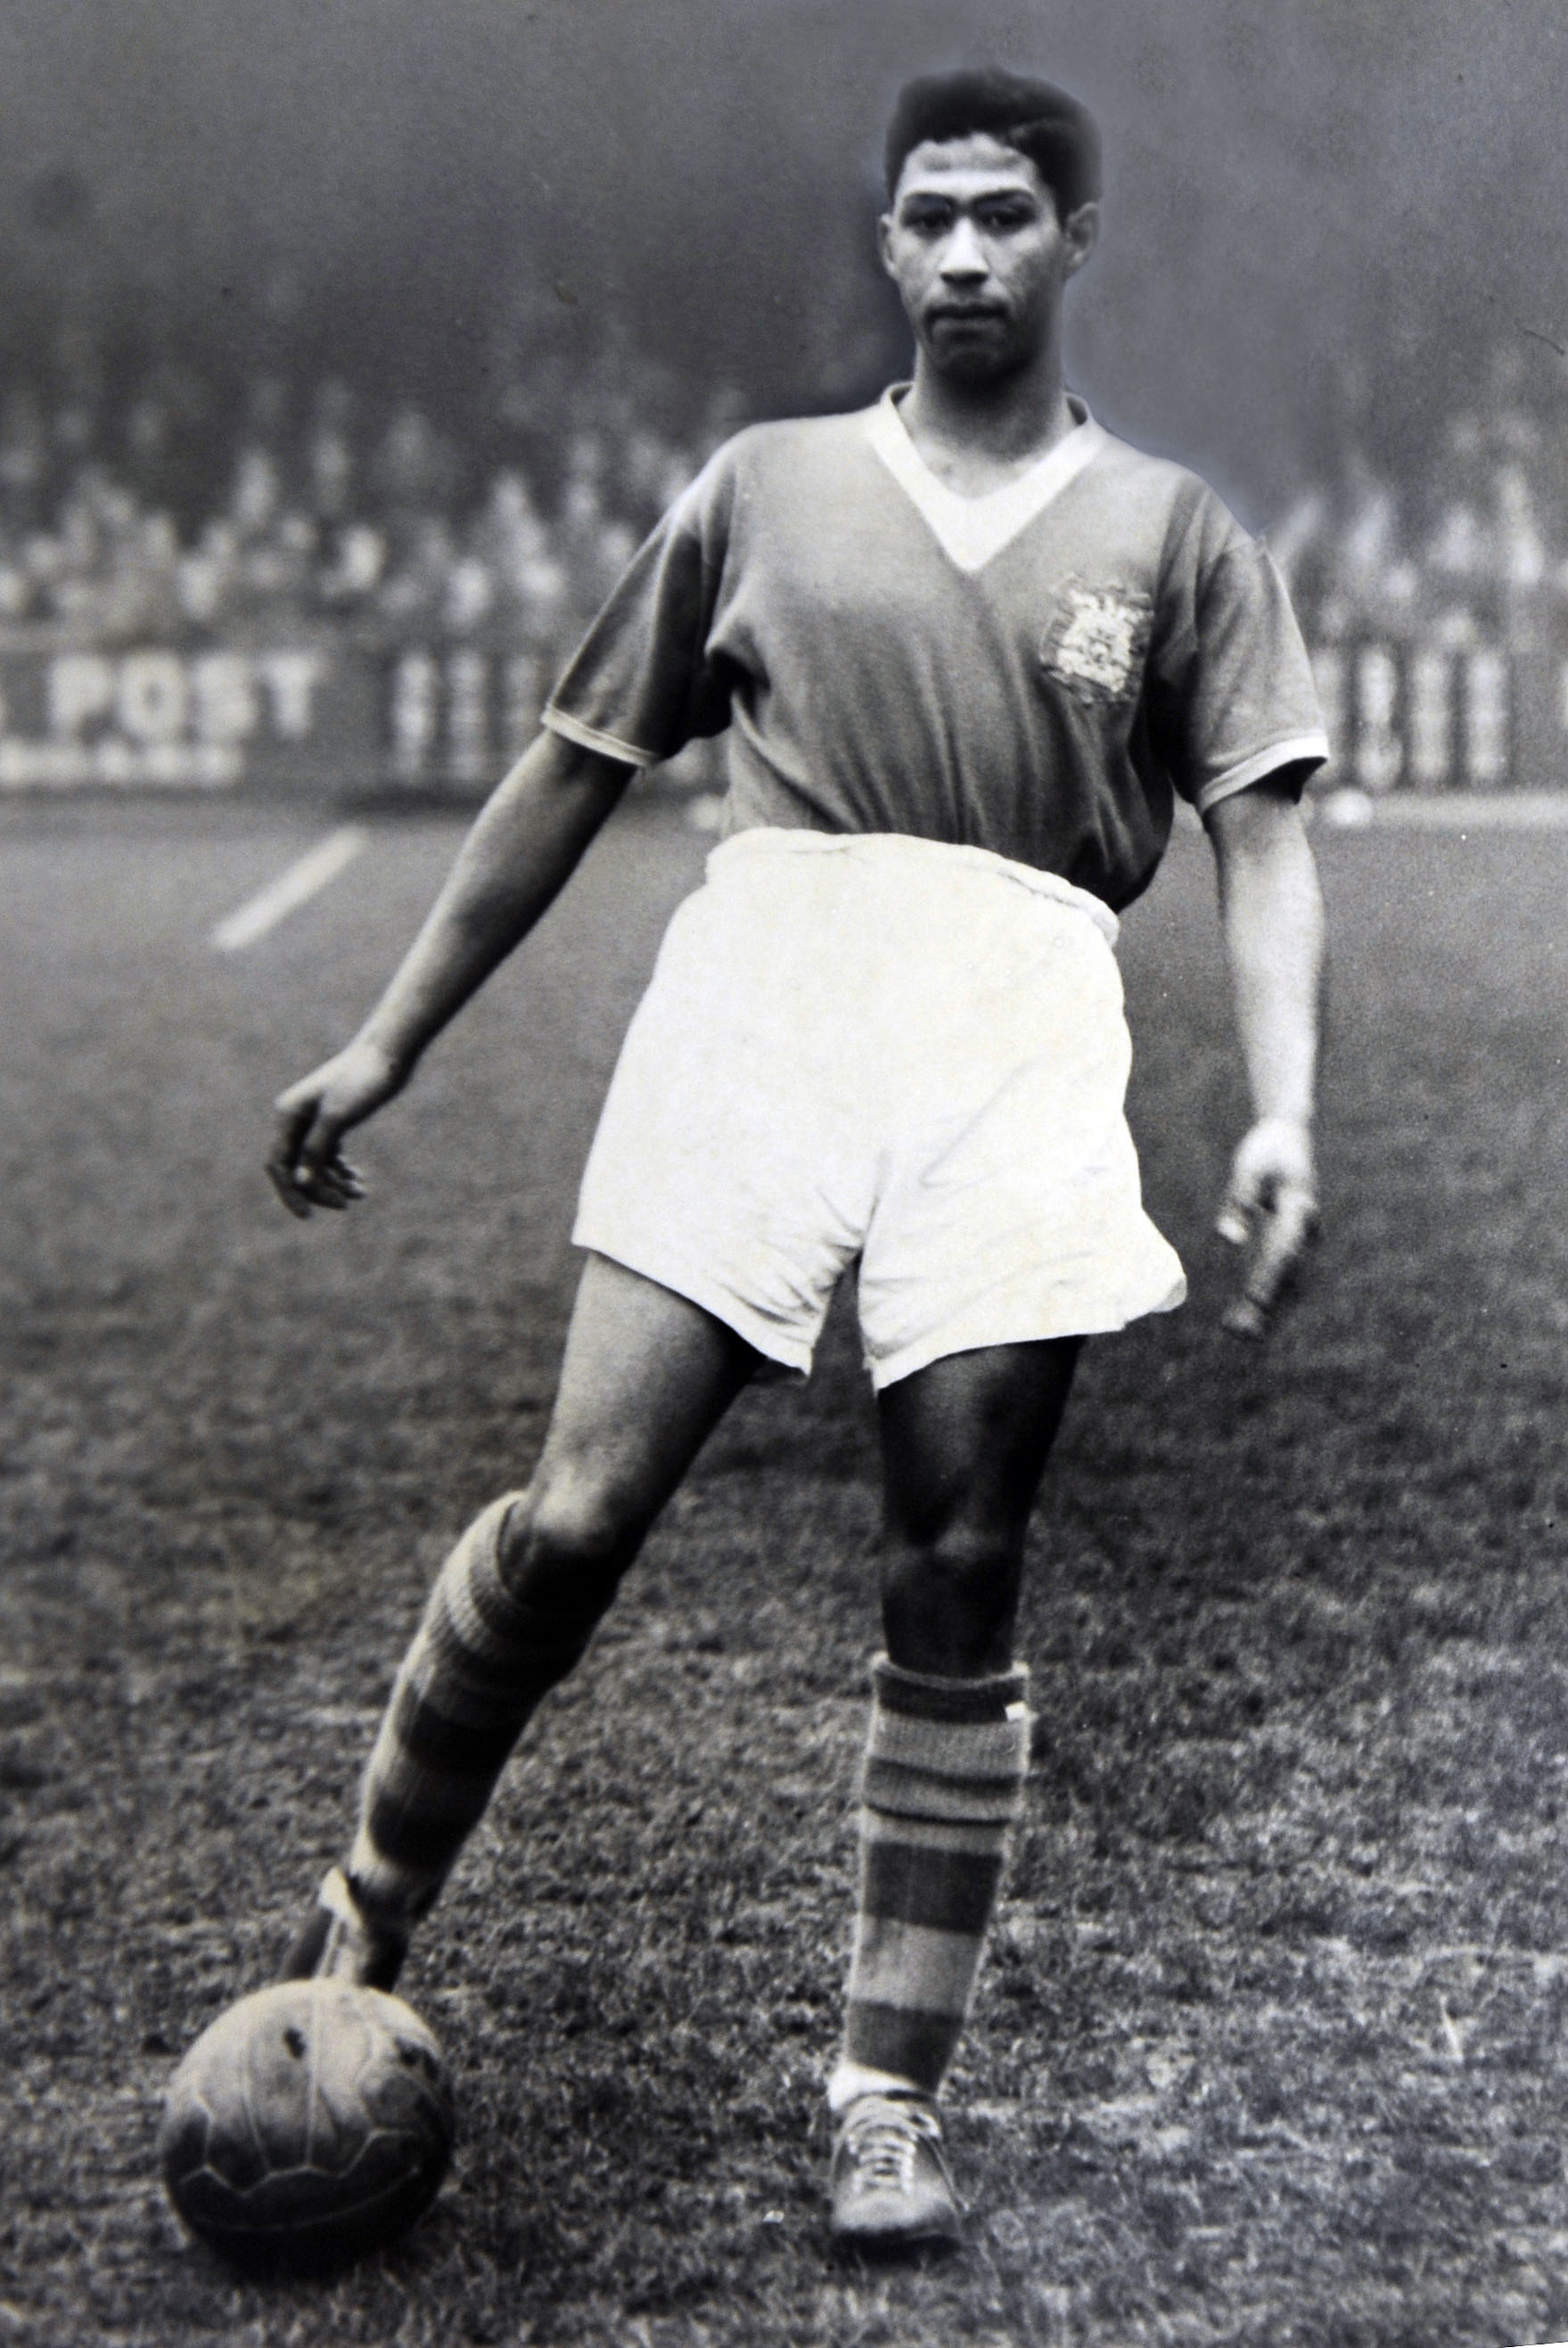 Black and white photograph of Gerry Francis with one foot on a football